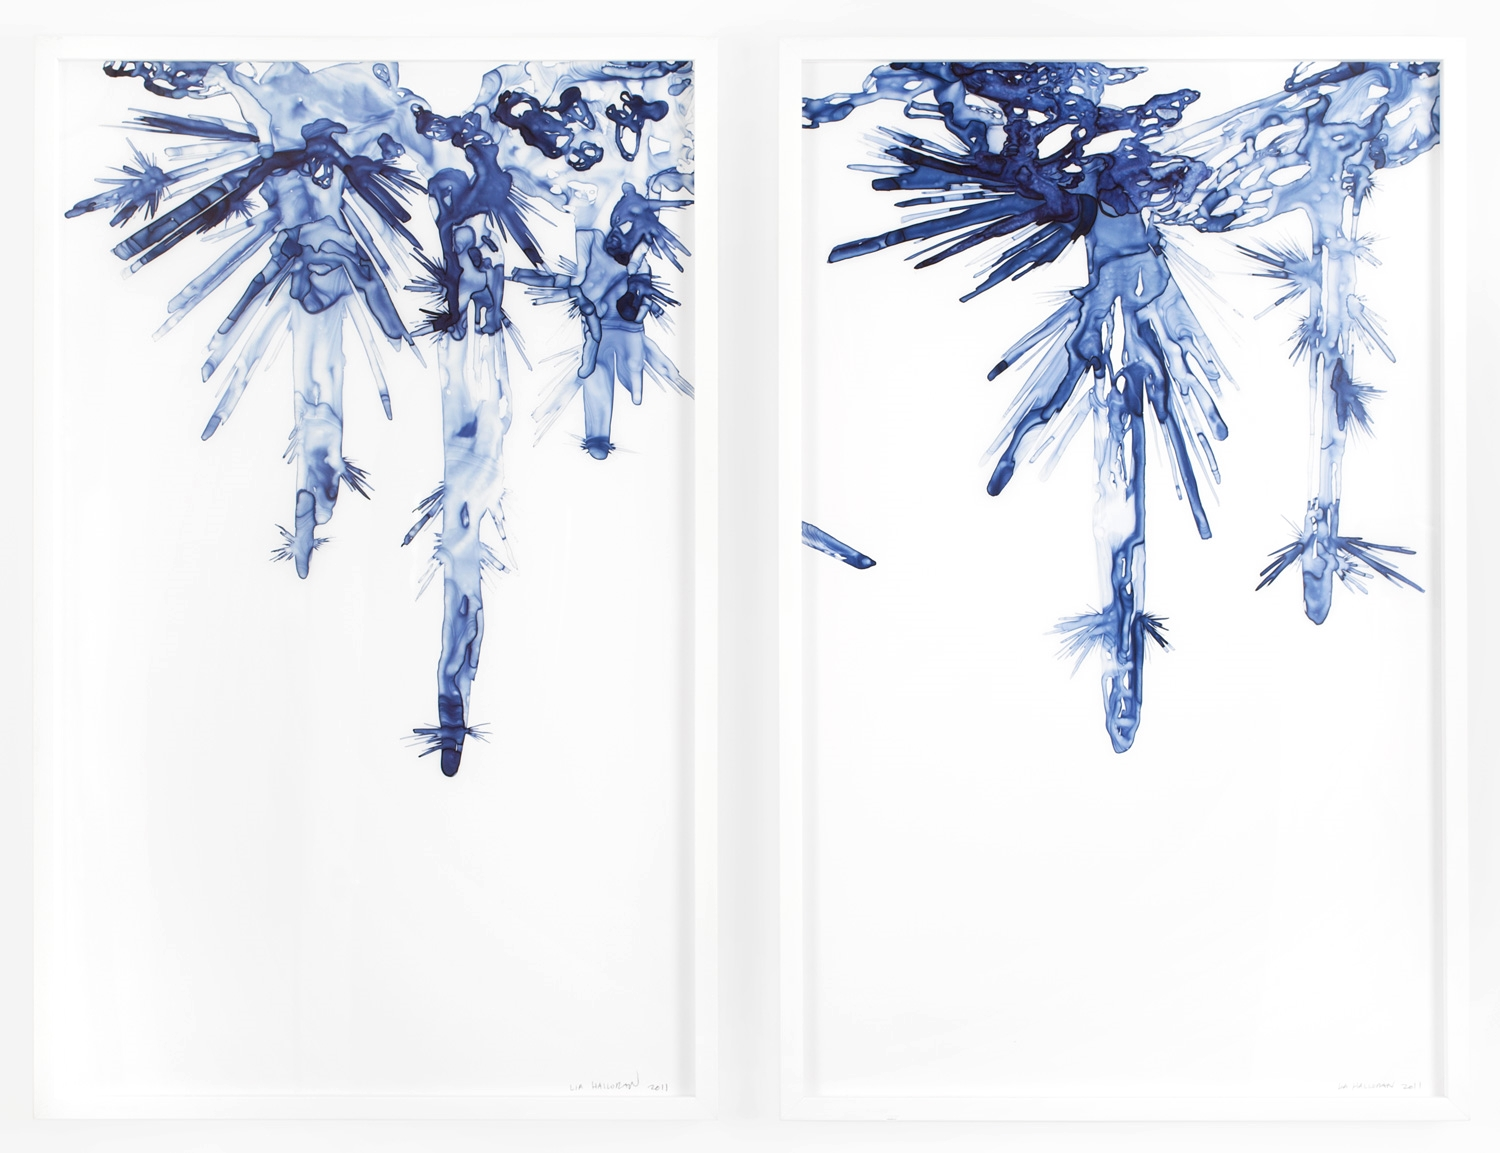 Hanging Crystalline Forms I & II  2011 Ink on drafting film, 40 x 25 inches each